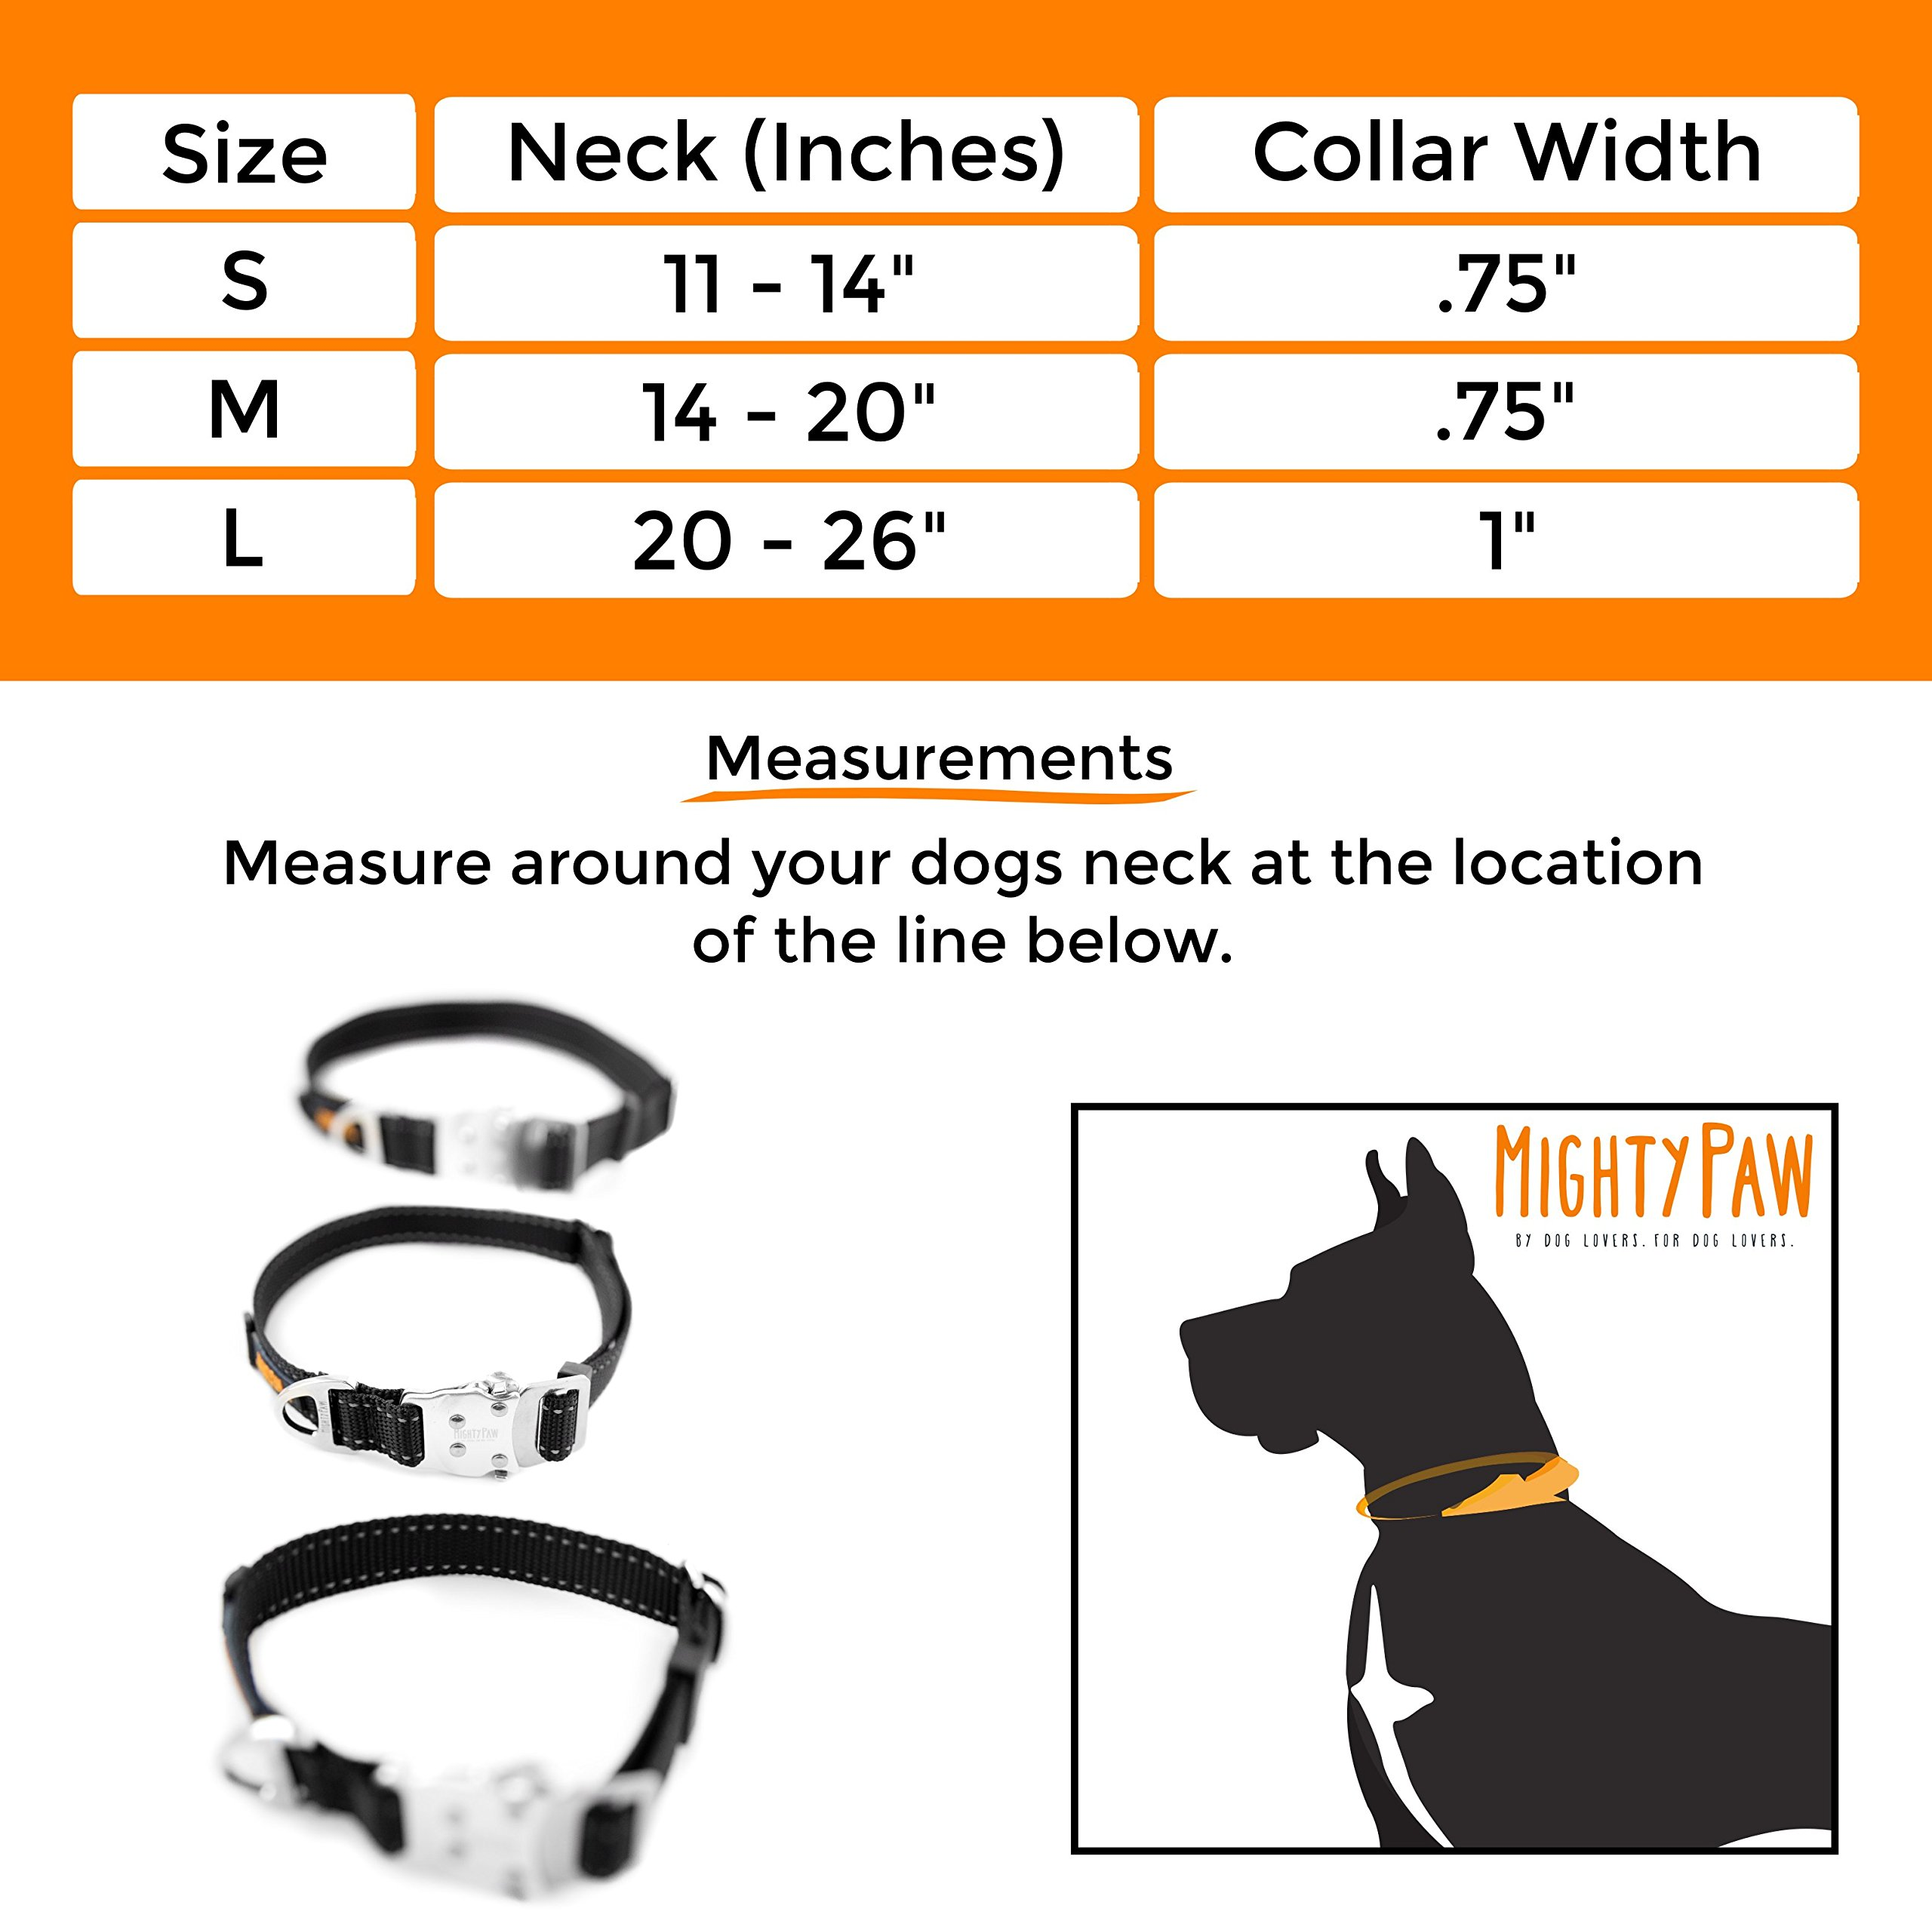 Mighty Paw Metal Buckle Dog Collar, All Metal Hardware, Lightweight Collar, Reflective Stitching, Strong, Durable (Medium, Black) by Mighty Paw (Image #8)